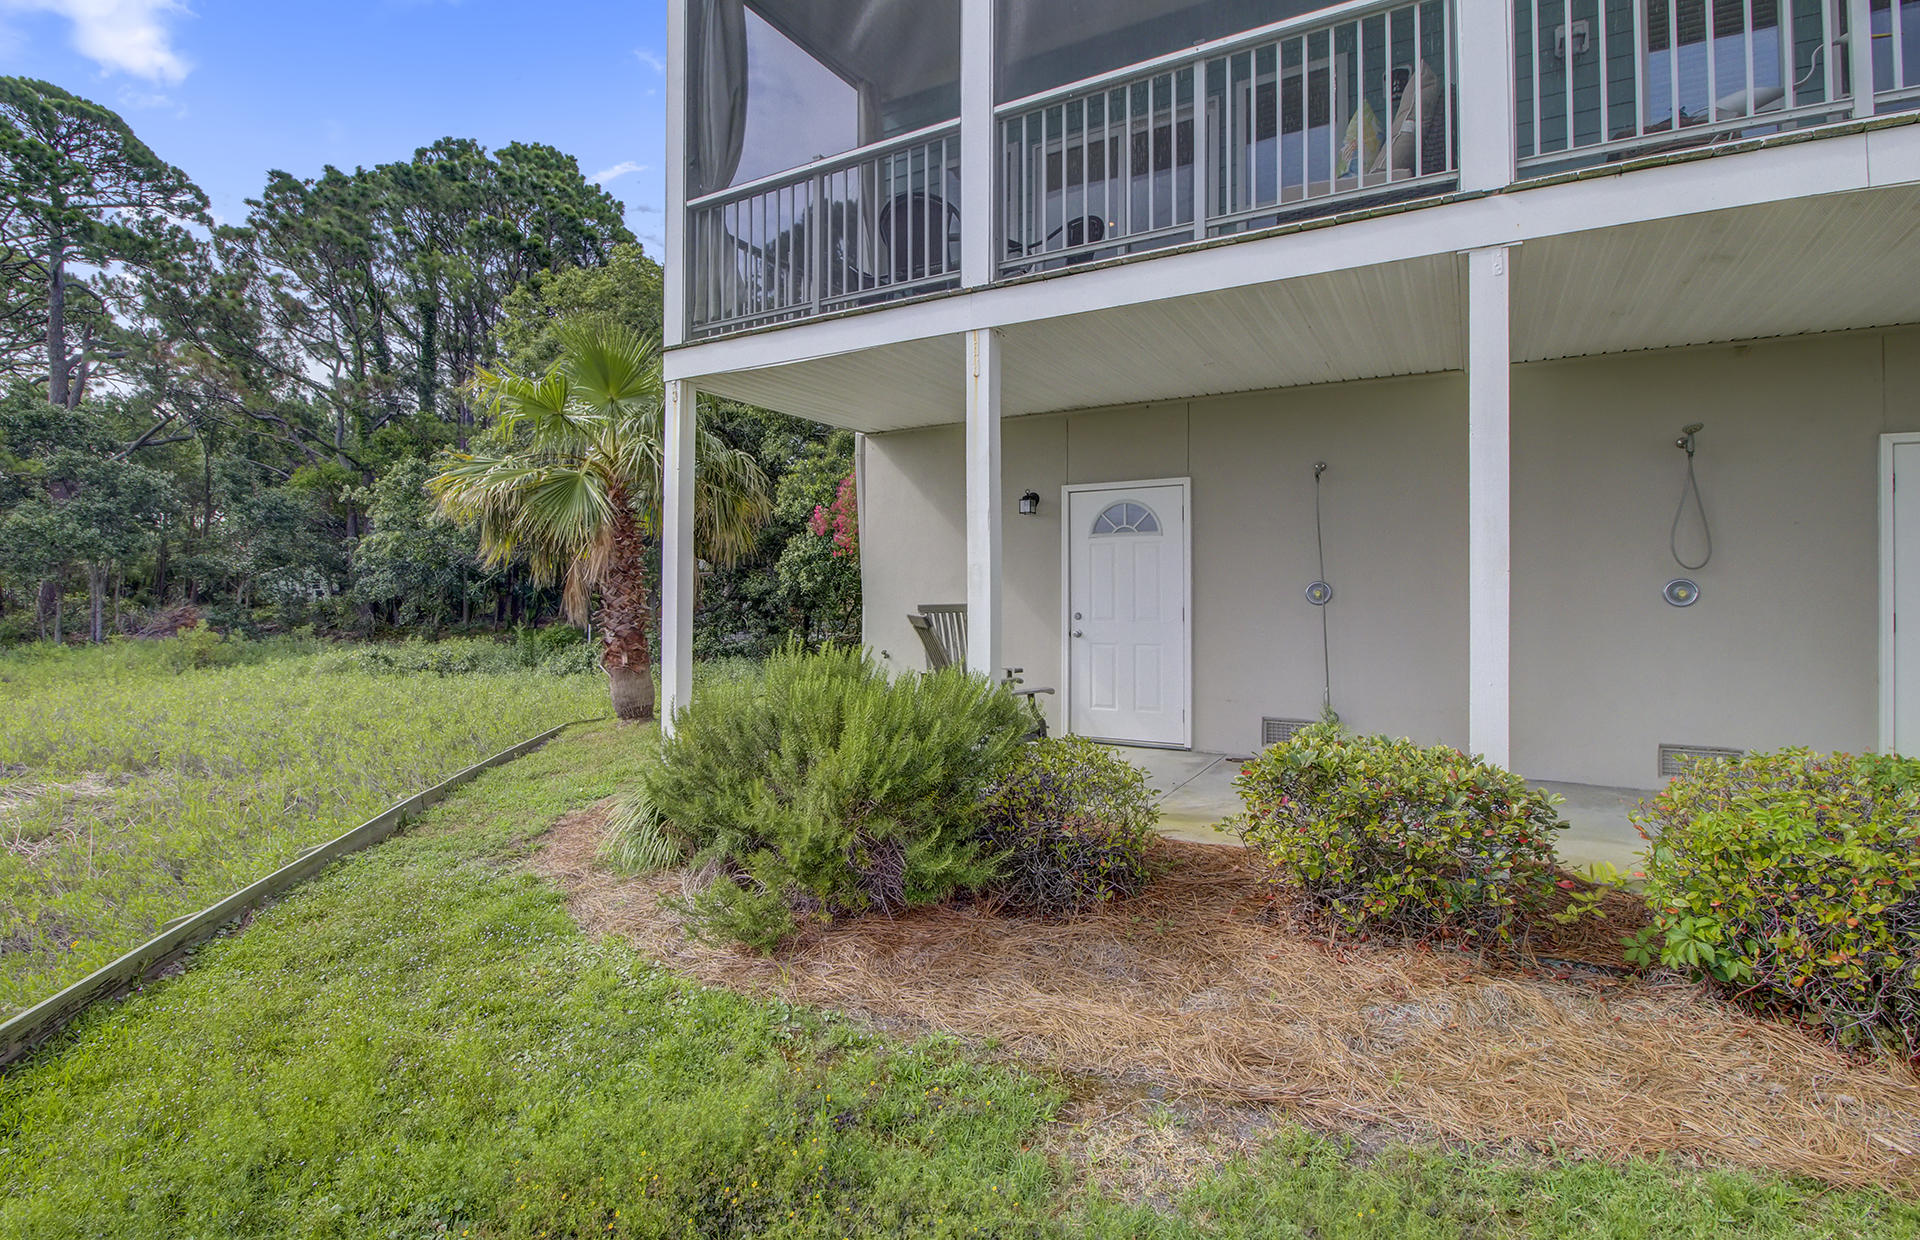 Waters Edge Homes For Sale - 80 2nd, Folly Beach, SC - 21